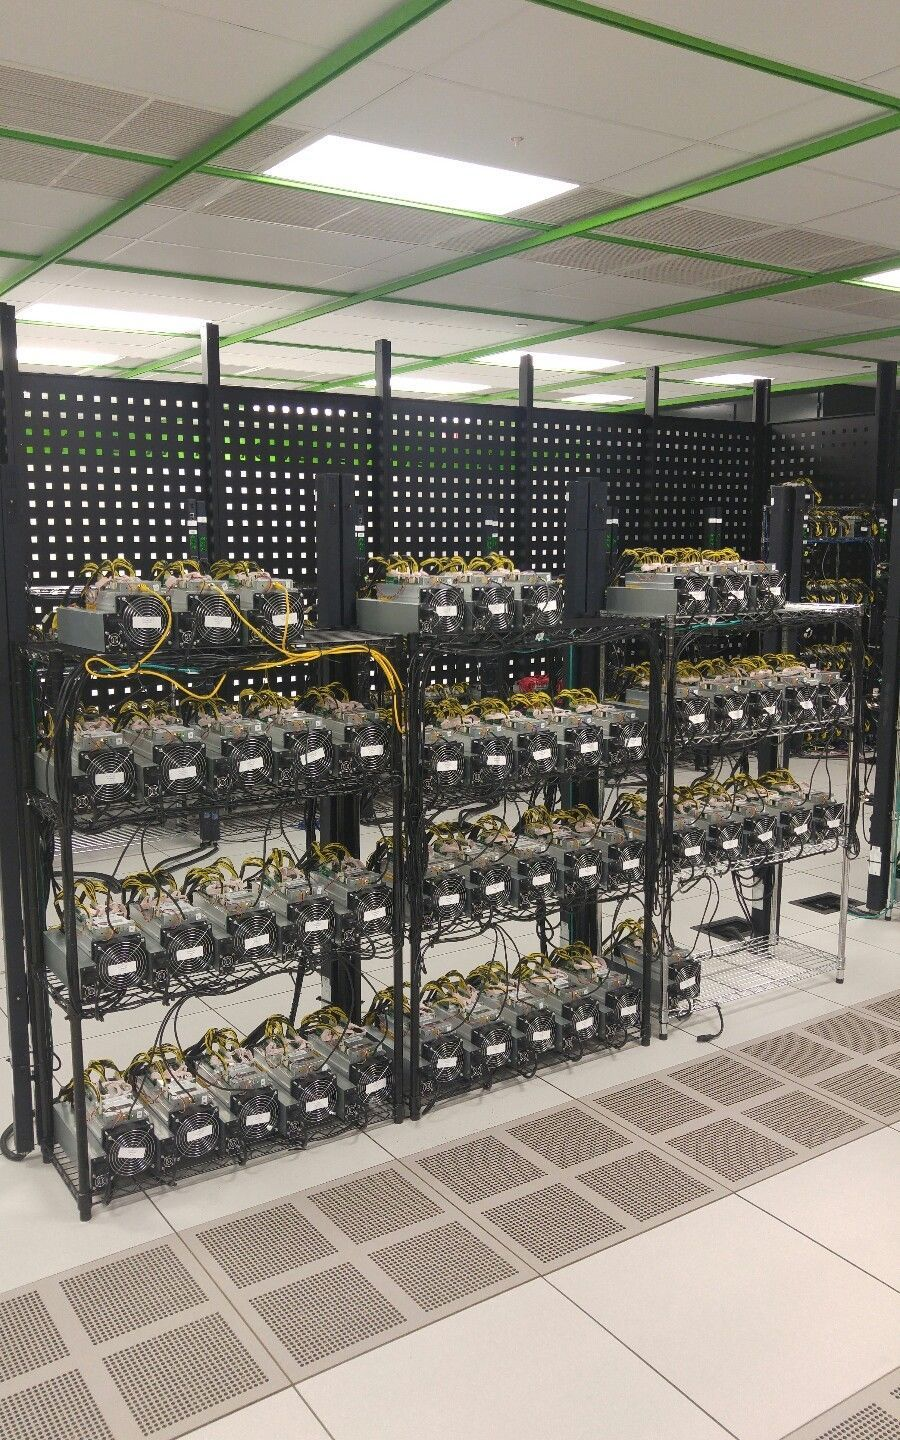 Lot of 5) Bitmain AntMiner S7 - 4 73 TH/s Bitcoin Miner